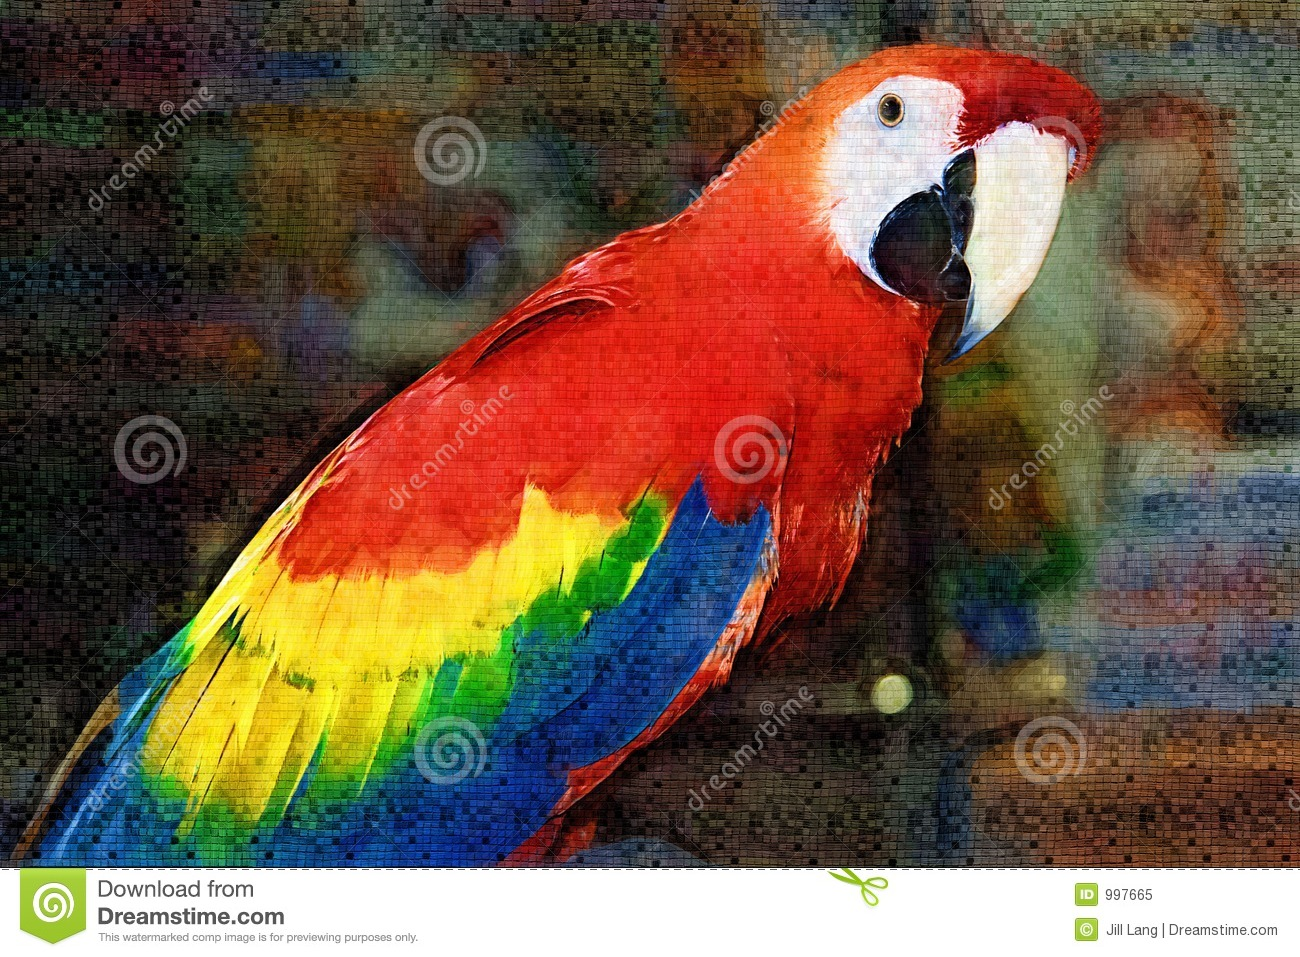 Download 3d Horse Wallpaper Scarlet Macaw Painting Royalty Free Stock Photo Image